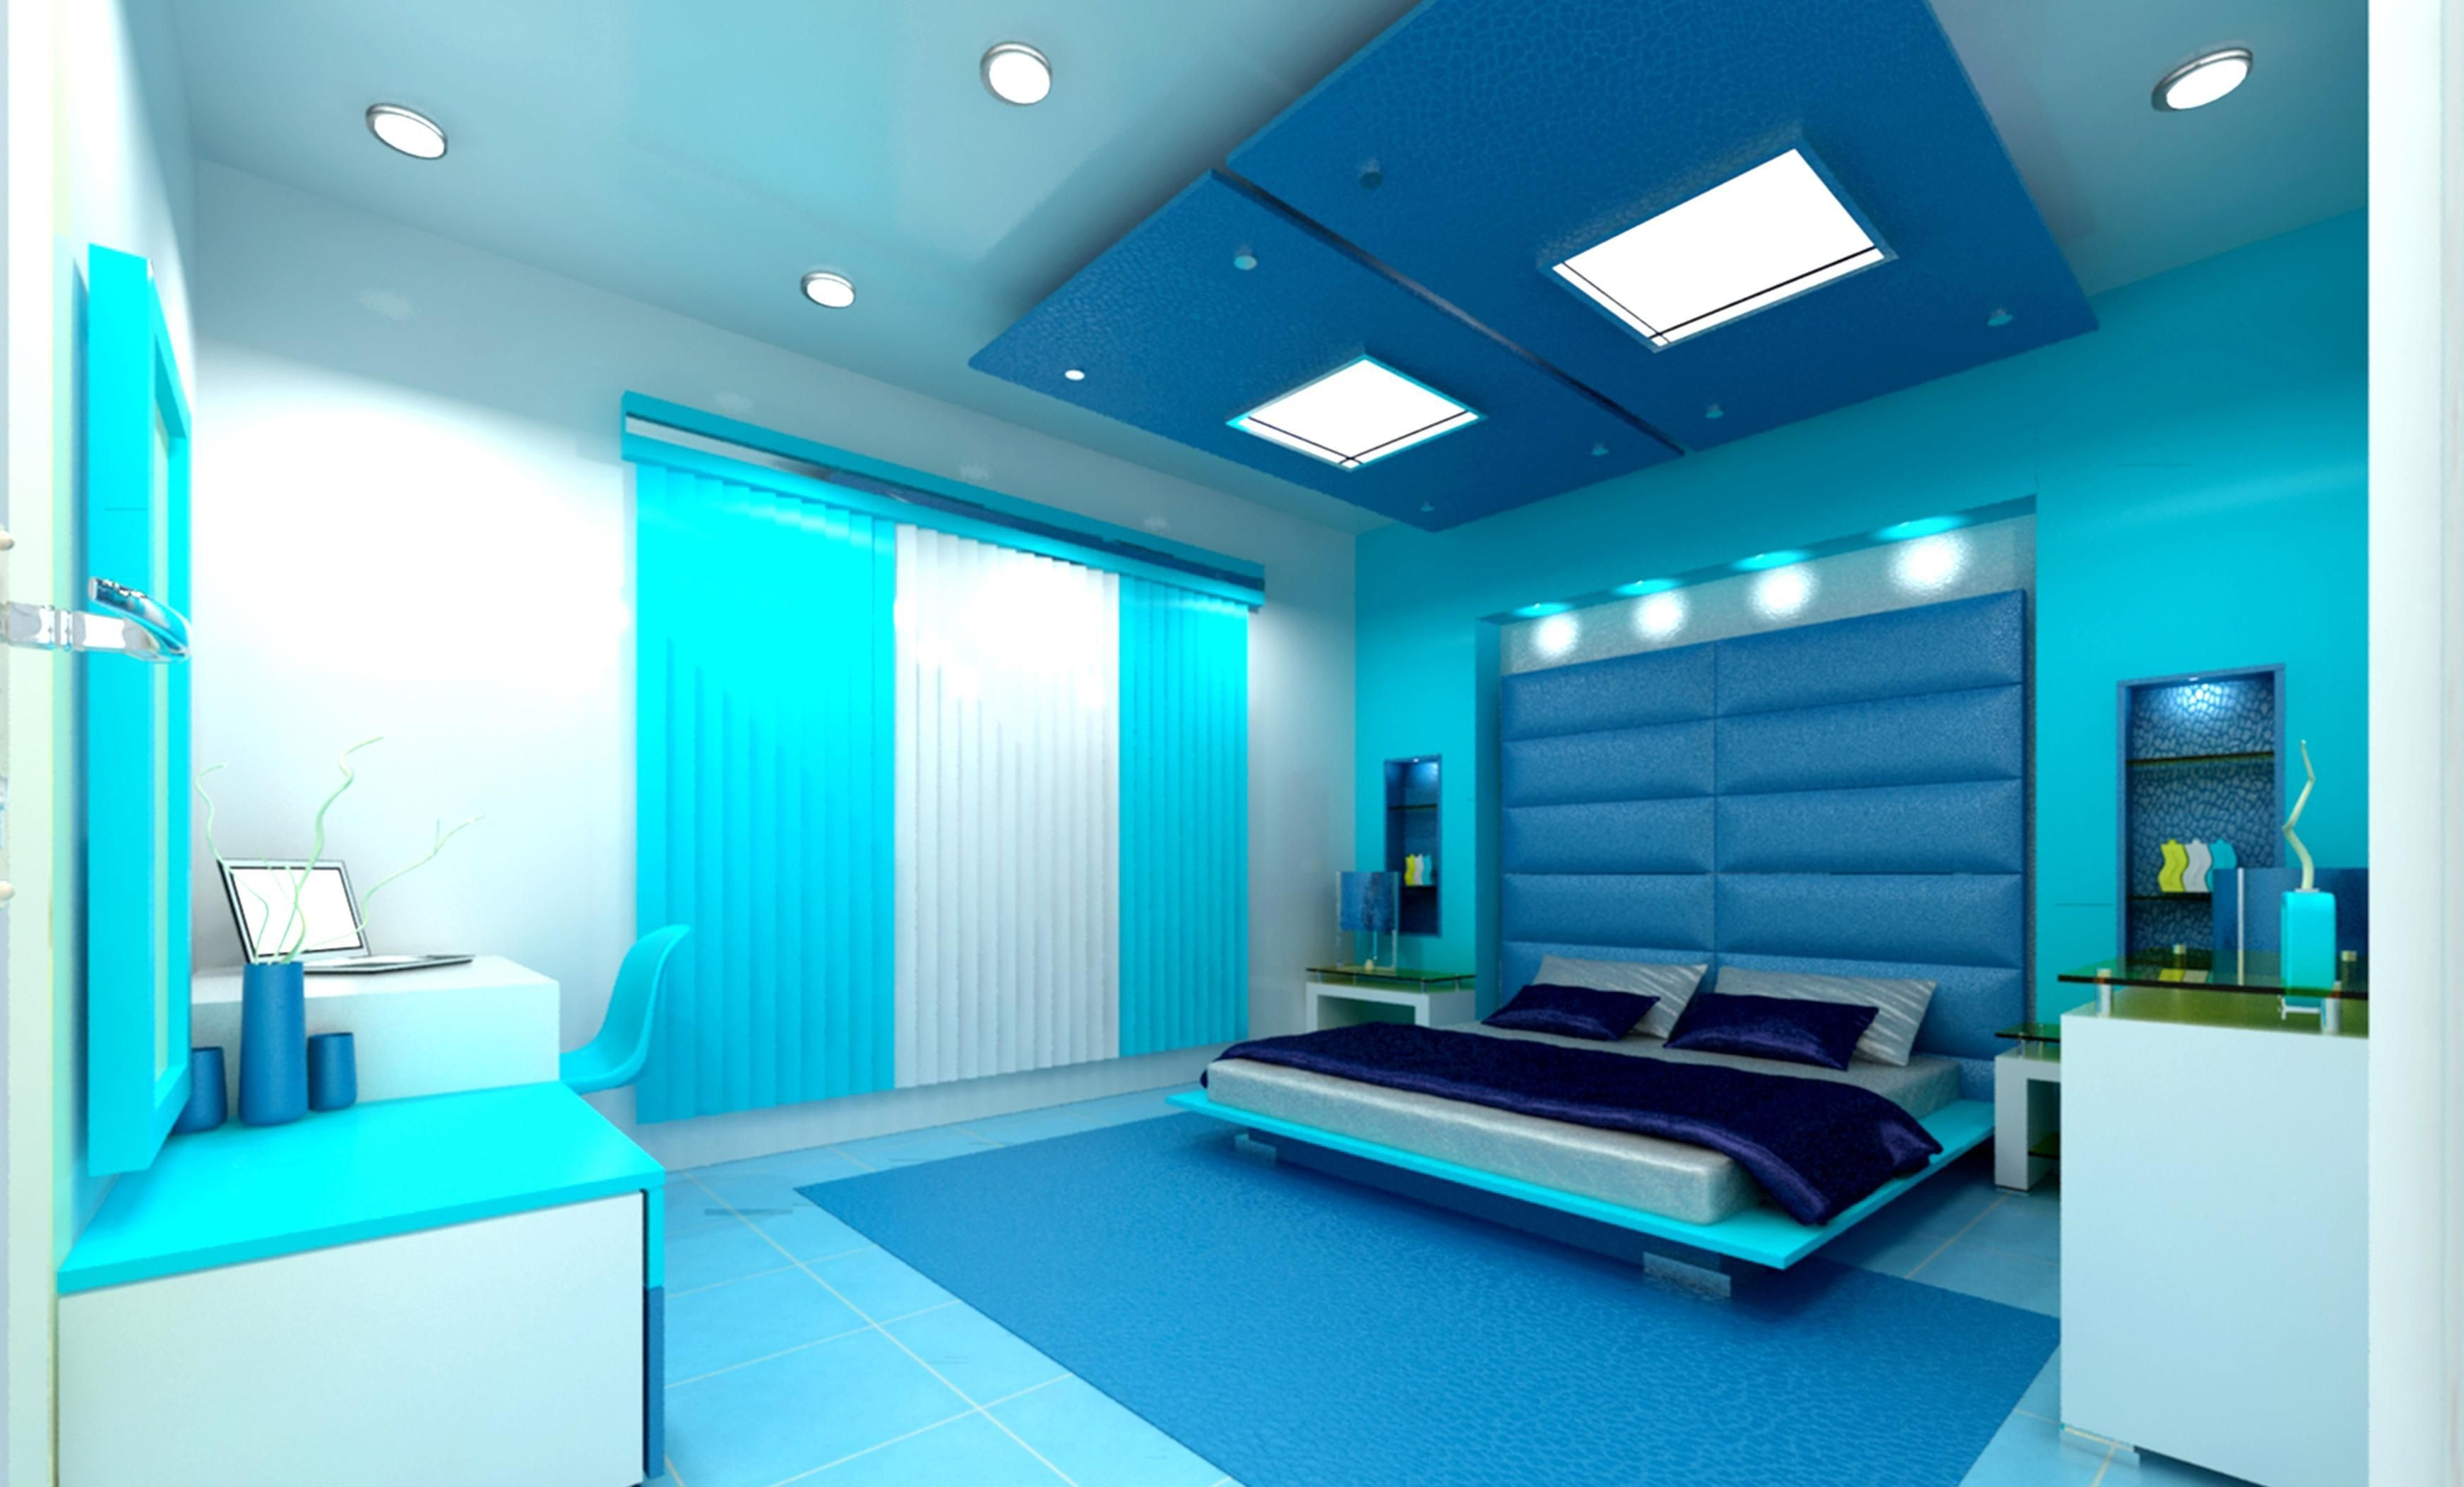 Looking For Boys Bedroom Ideas See More The Cool And Awesome Boys Bedroom Ideas To Match Your Style Browse Blue Bedroom Blue Bedroom Design Awesome Bedrooms